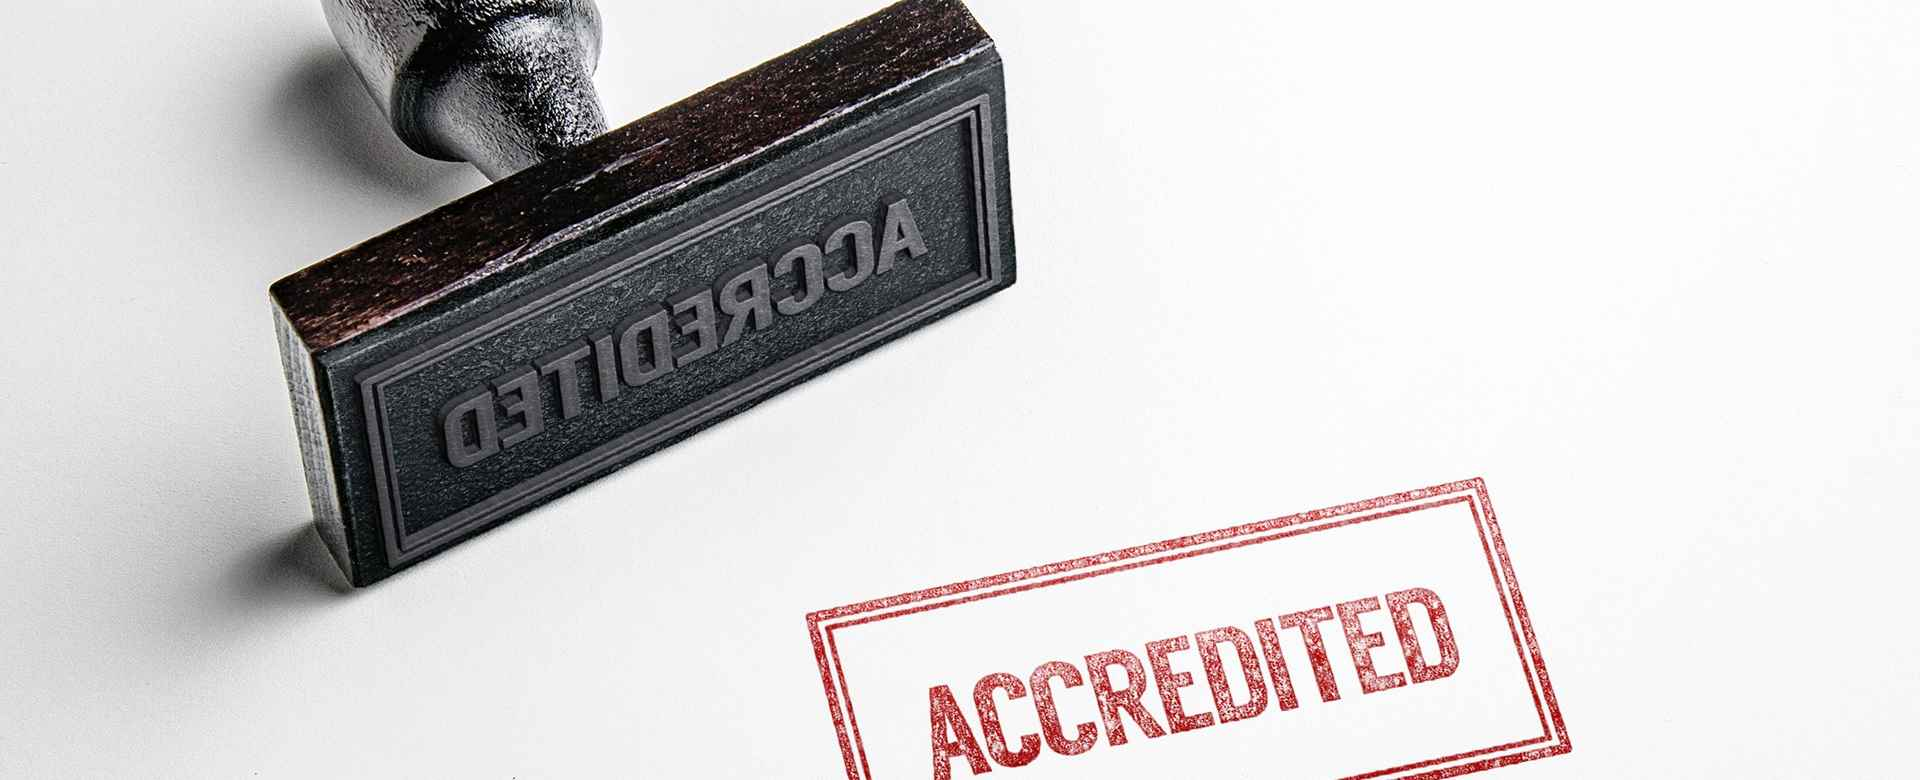 NCQA accreditation: What does it mean?